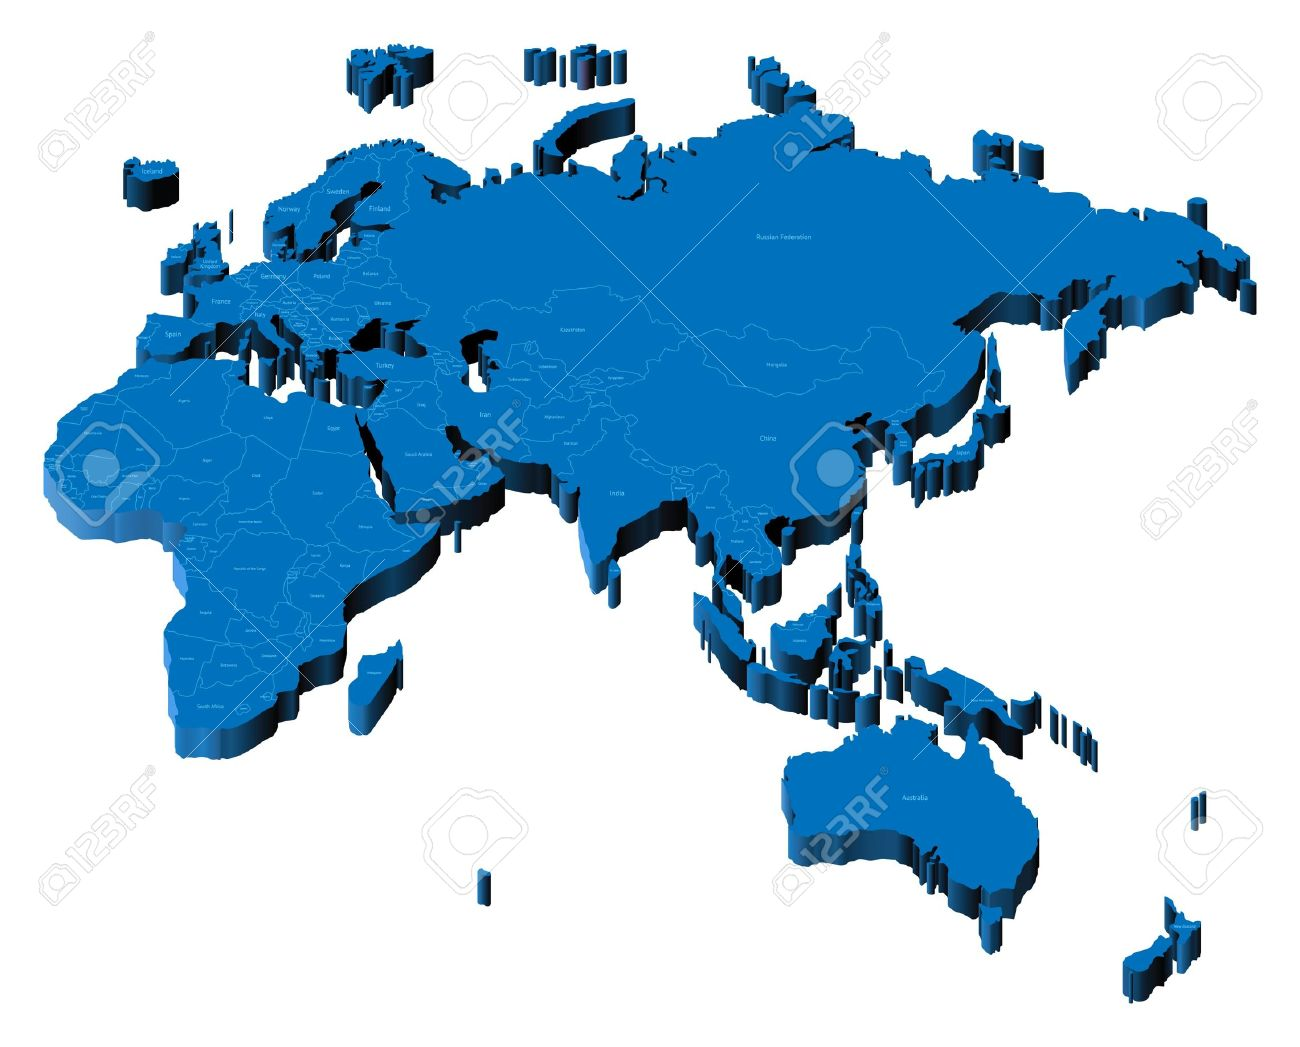 Clipart europe asia map.